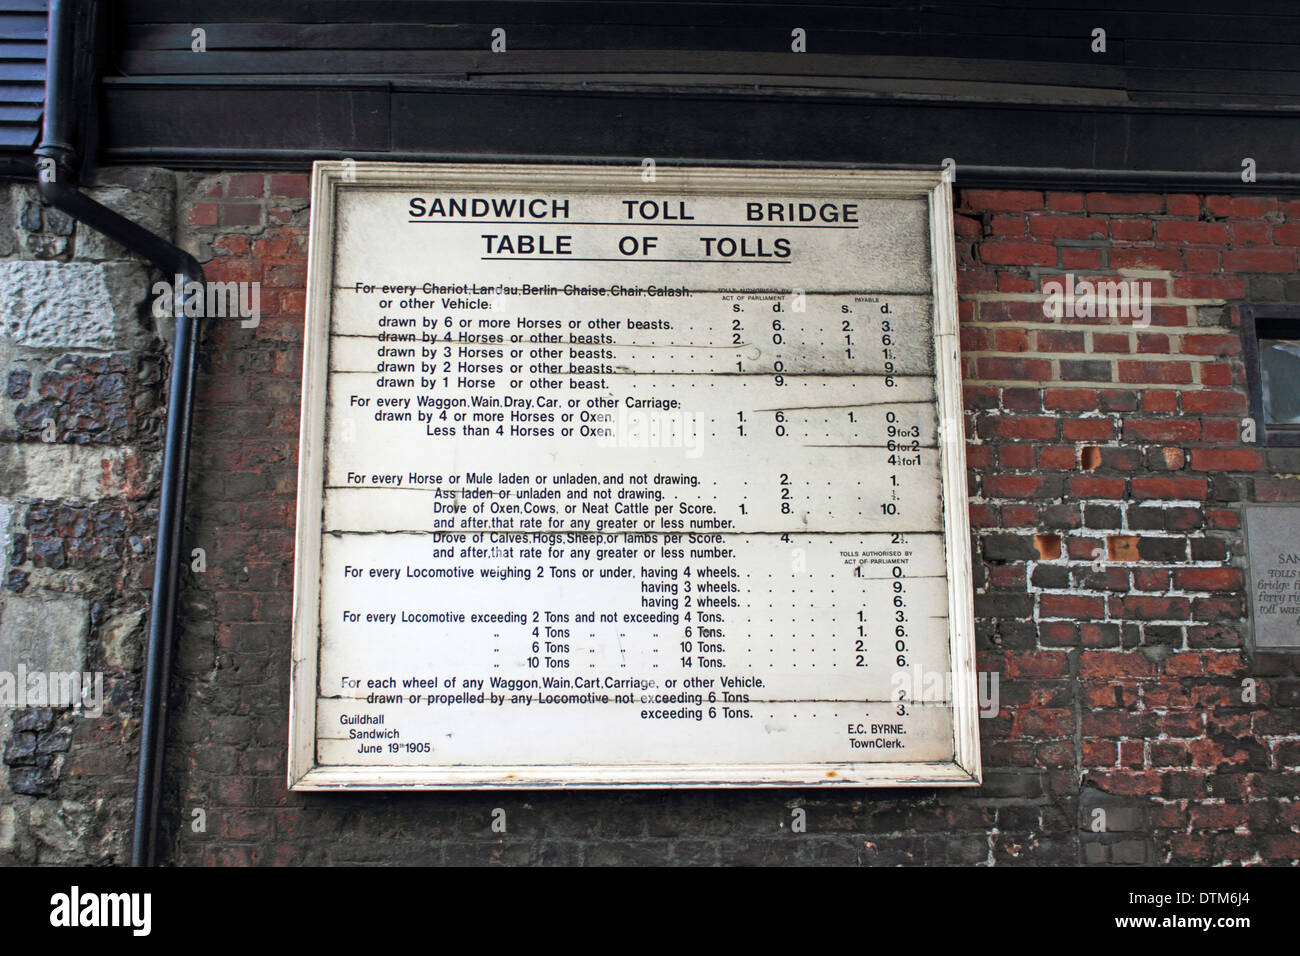 The table of tolls at the Toll Bridge in historic town of Sandwich, Kent, England, UK. - Stock Image